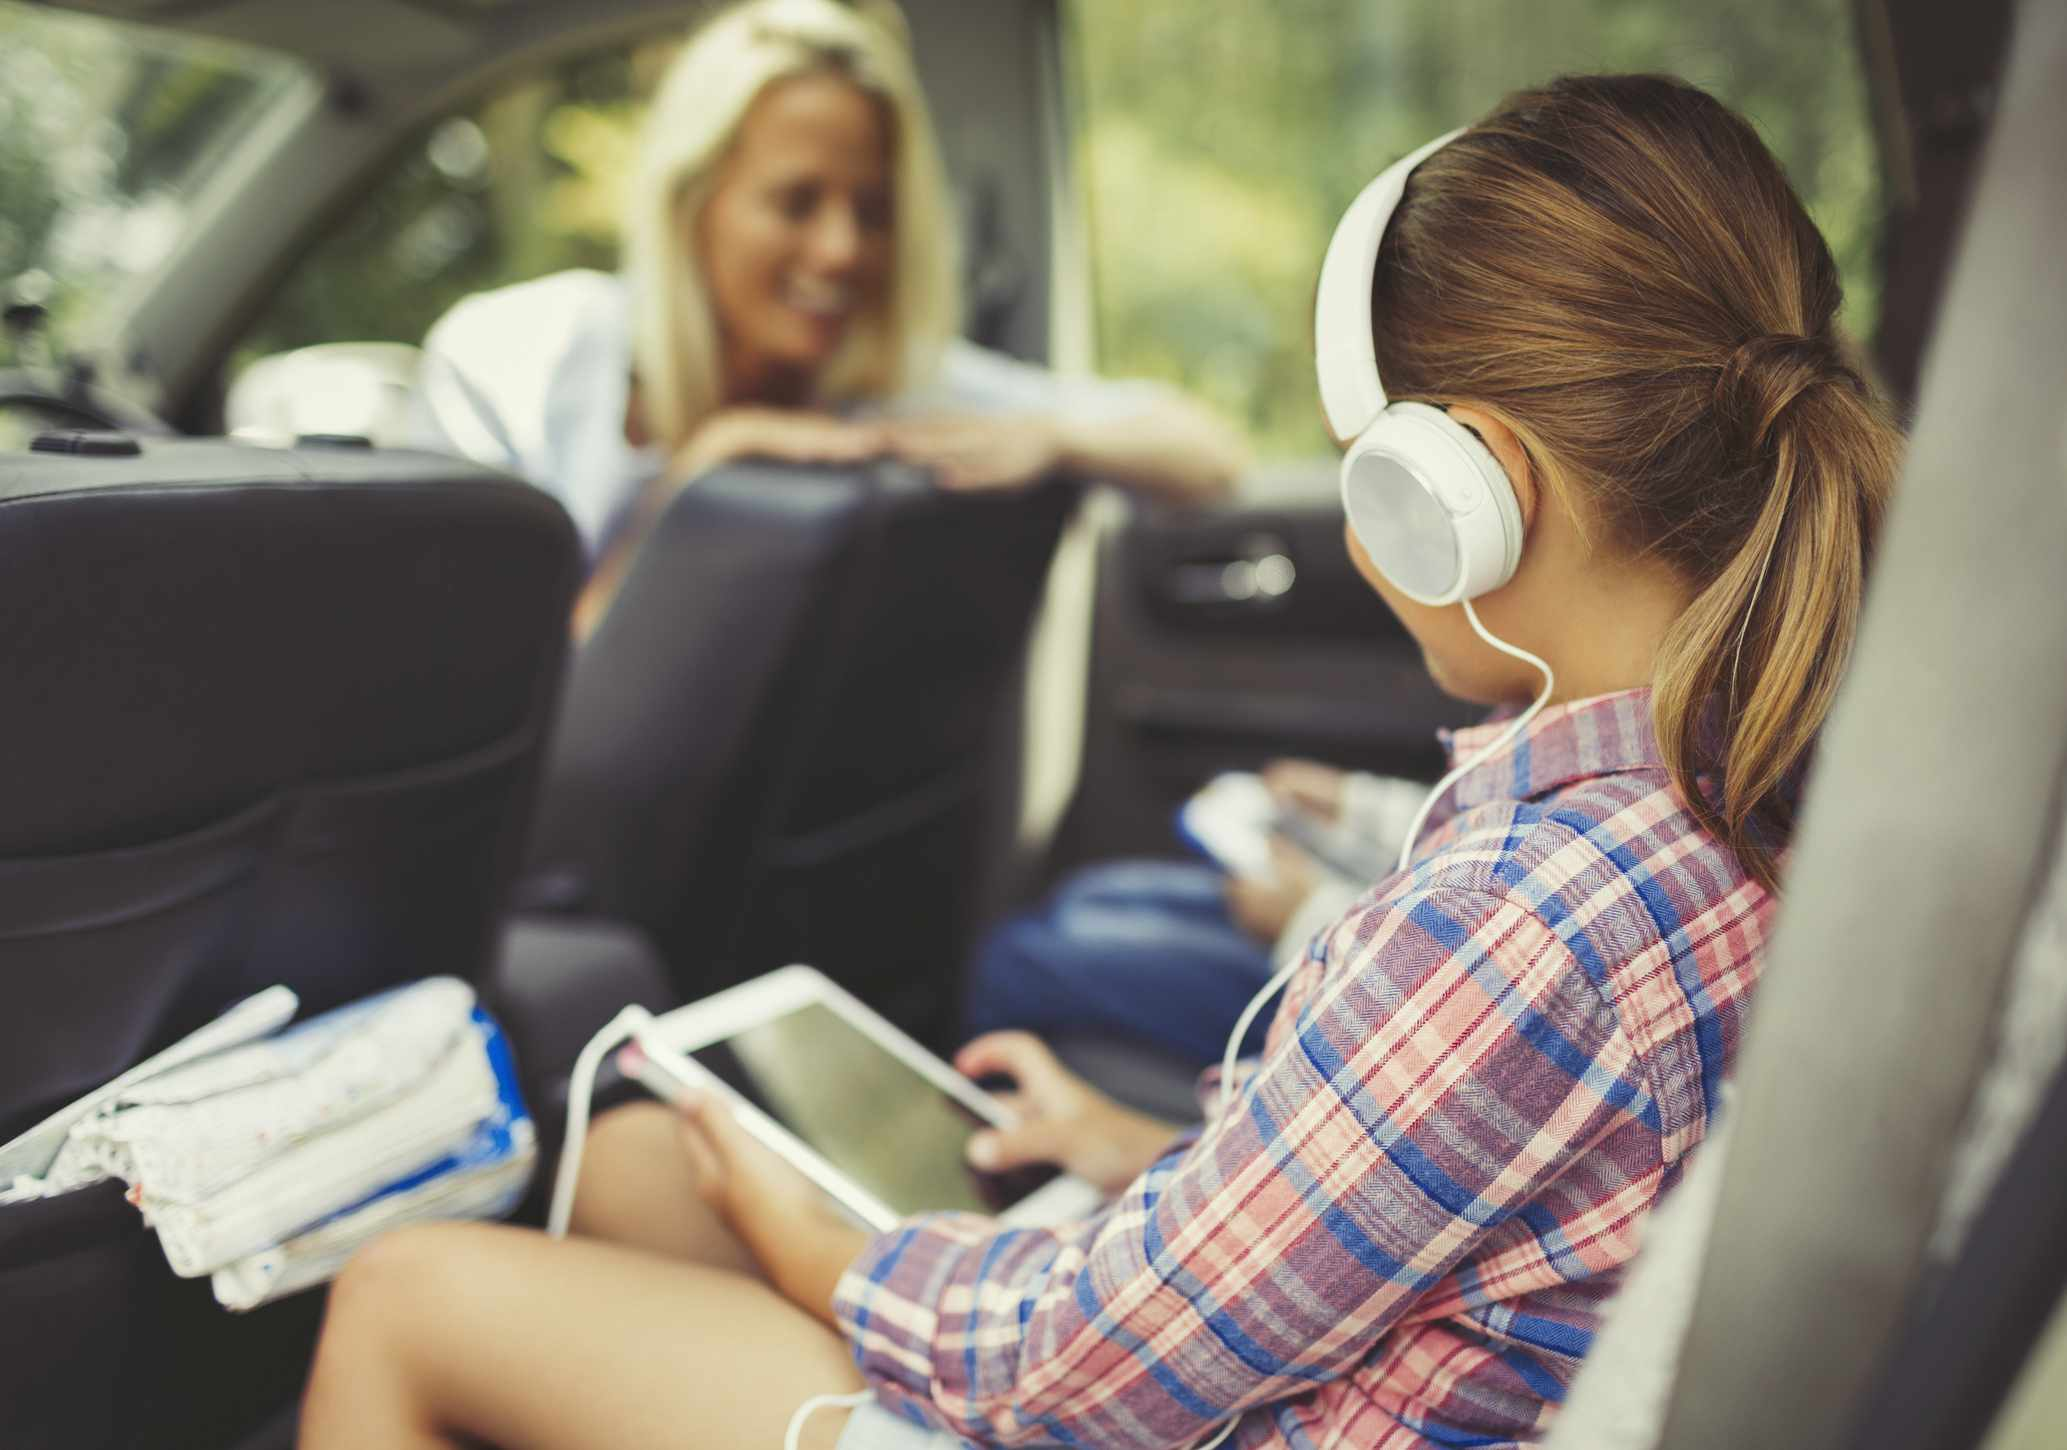 Girl listening to headphones in a car.